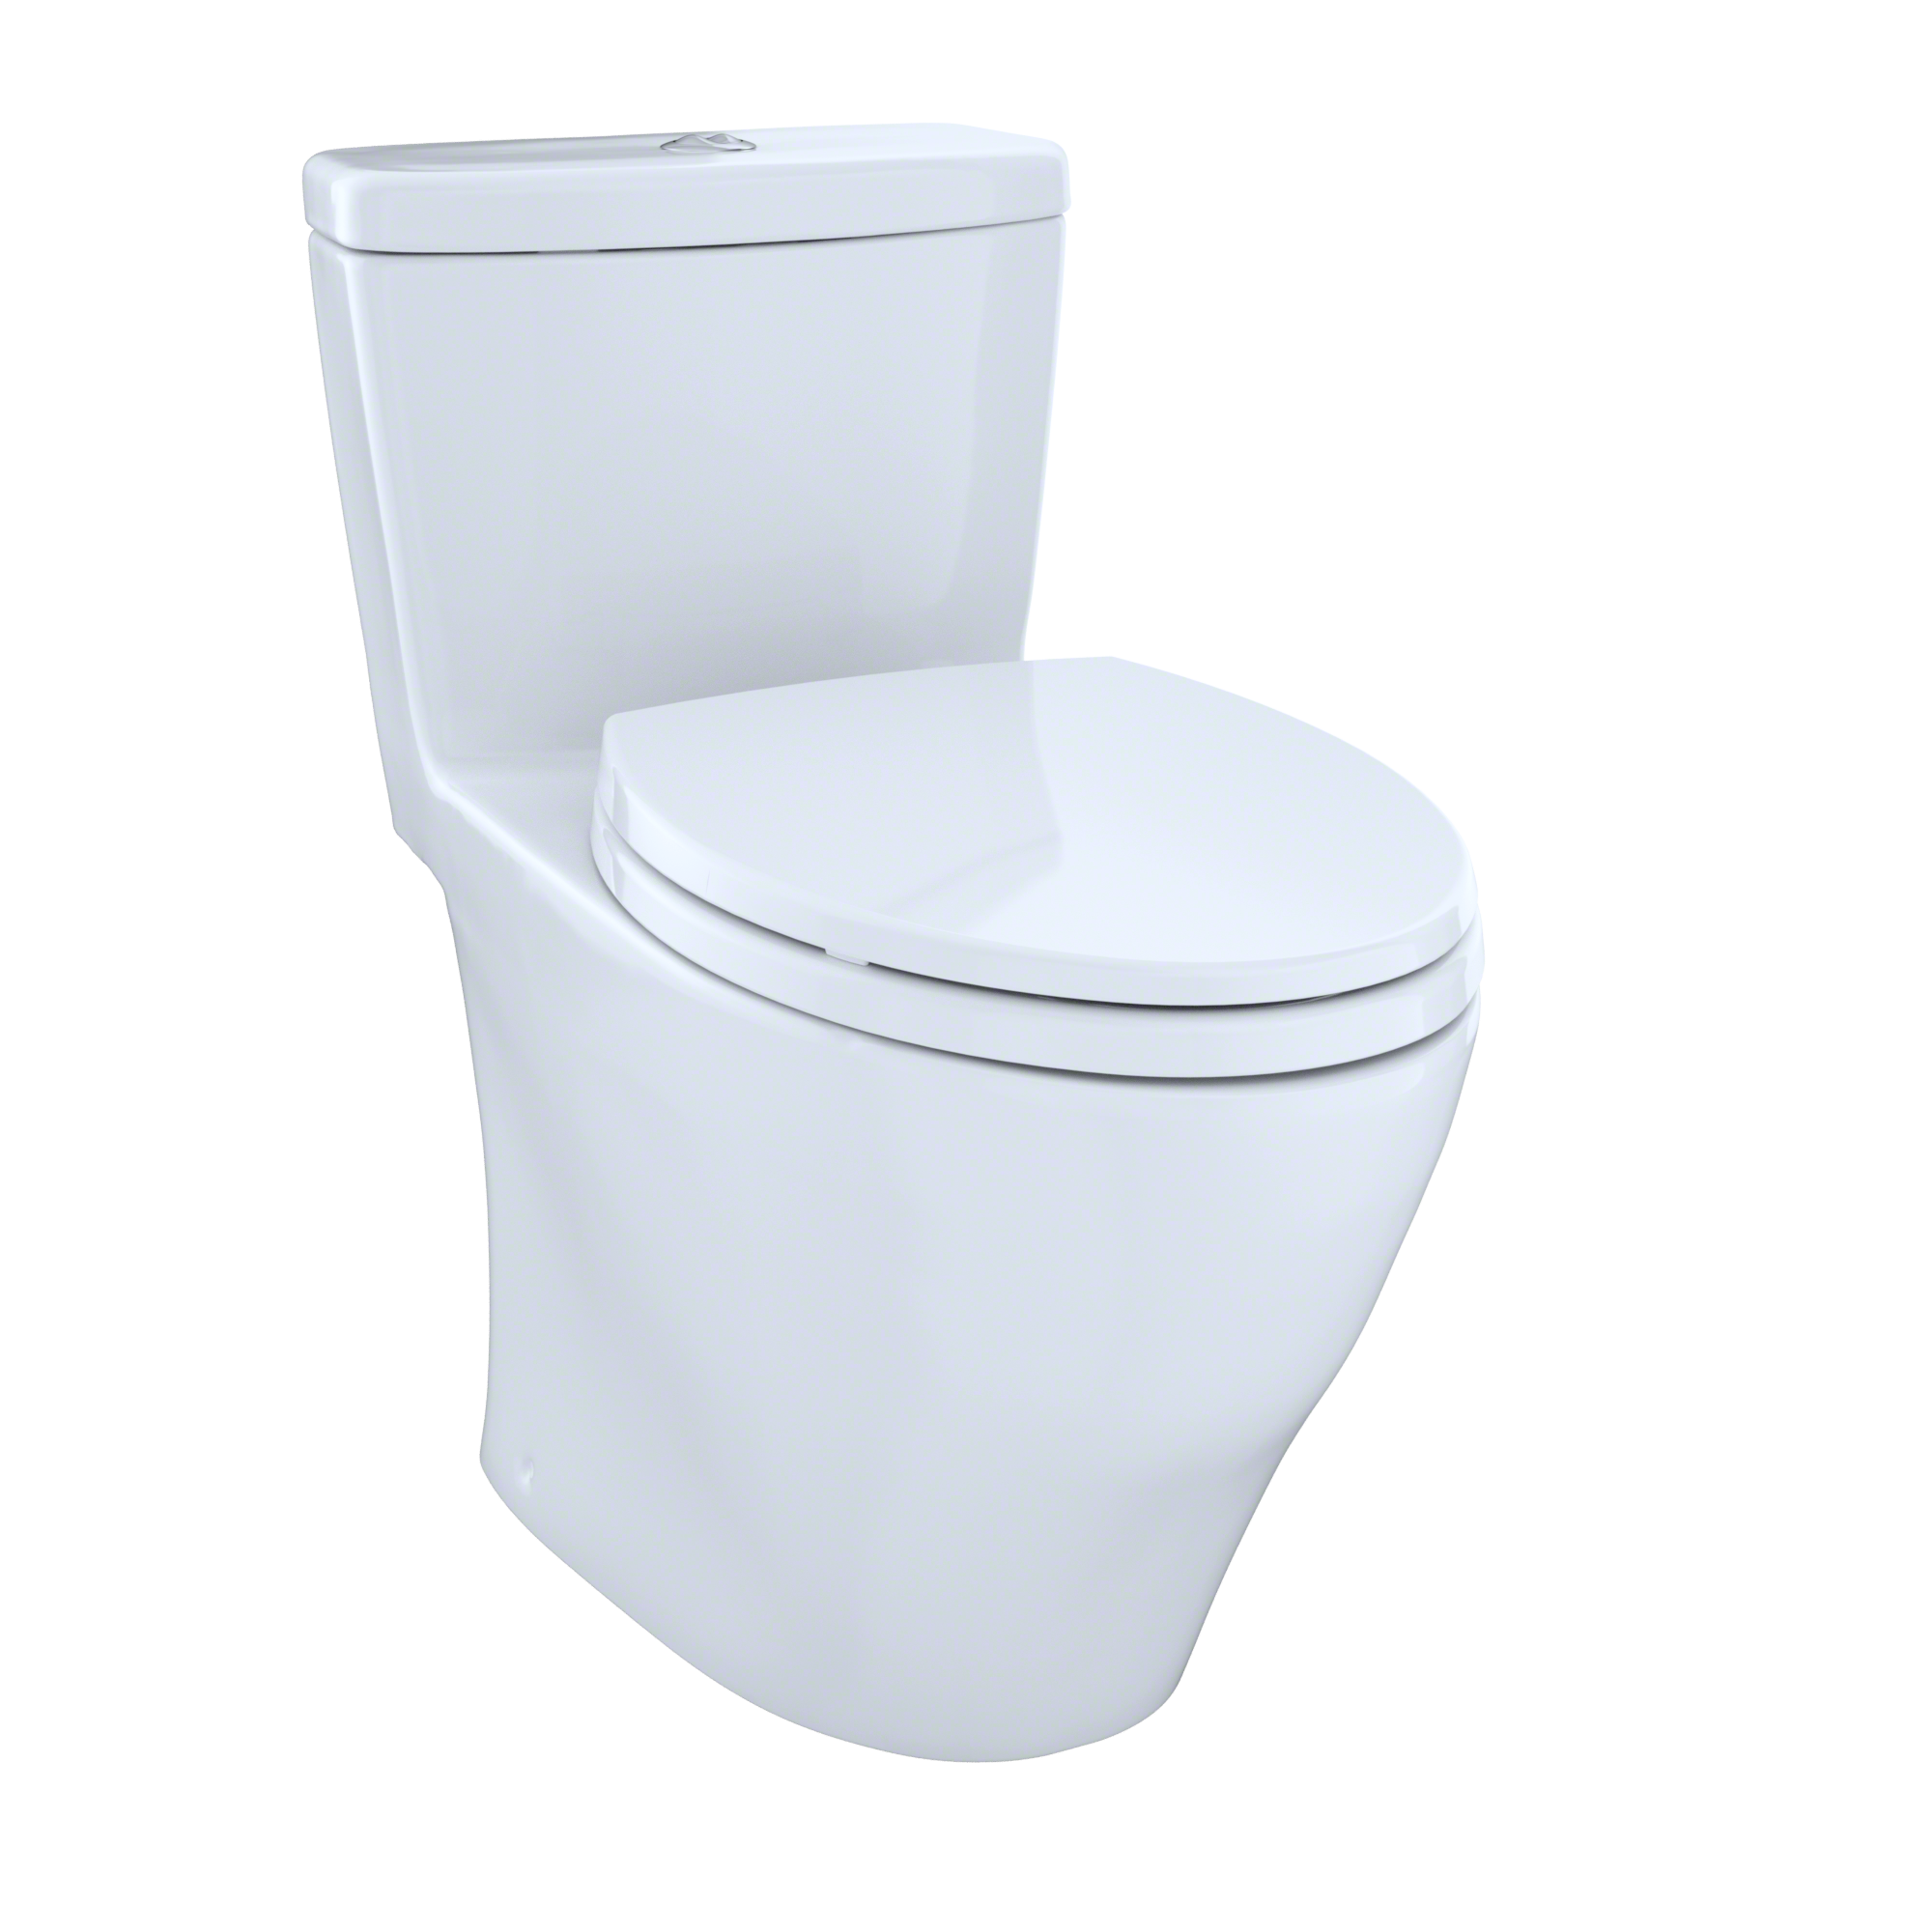 TOTO® Aquia® One-Piece Elongated Dual-Max®, Dual Flush 0.9 & 1.6 GPF Universal Height Skirted Toilet, Cotton White - MS654114MF#01